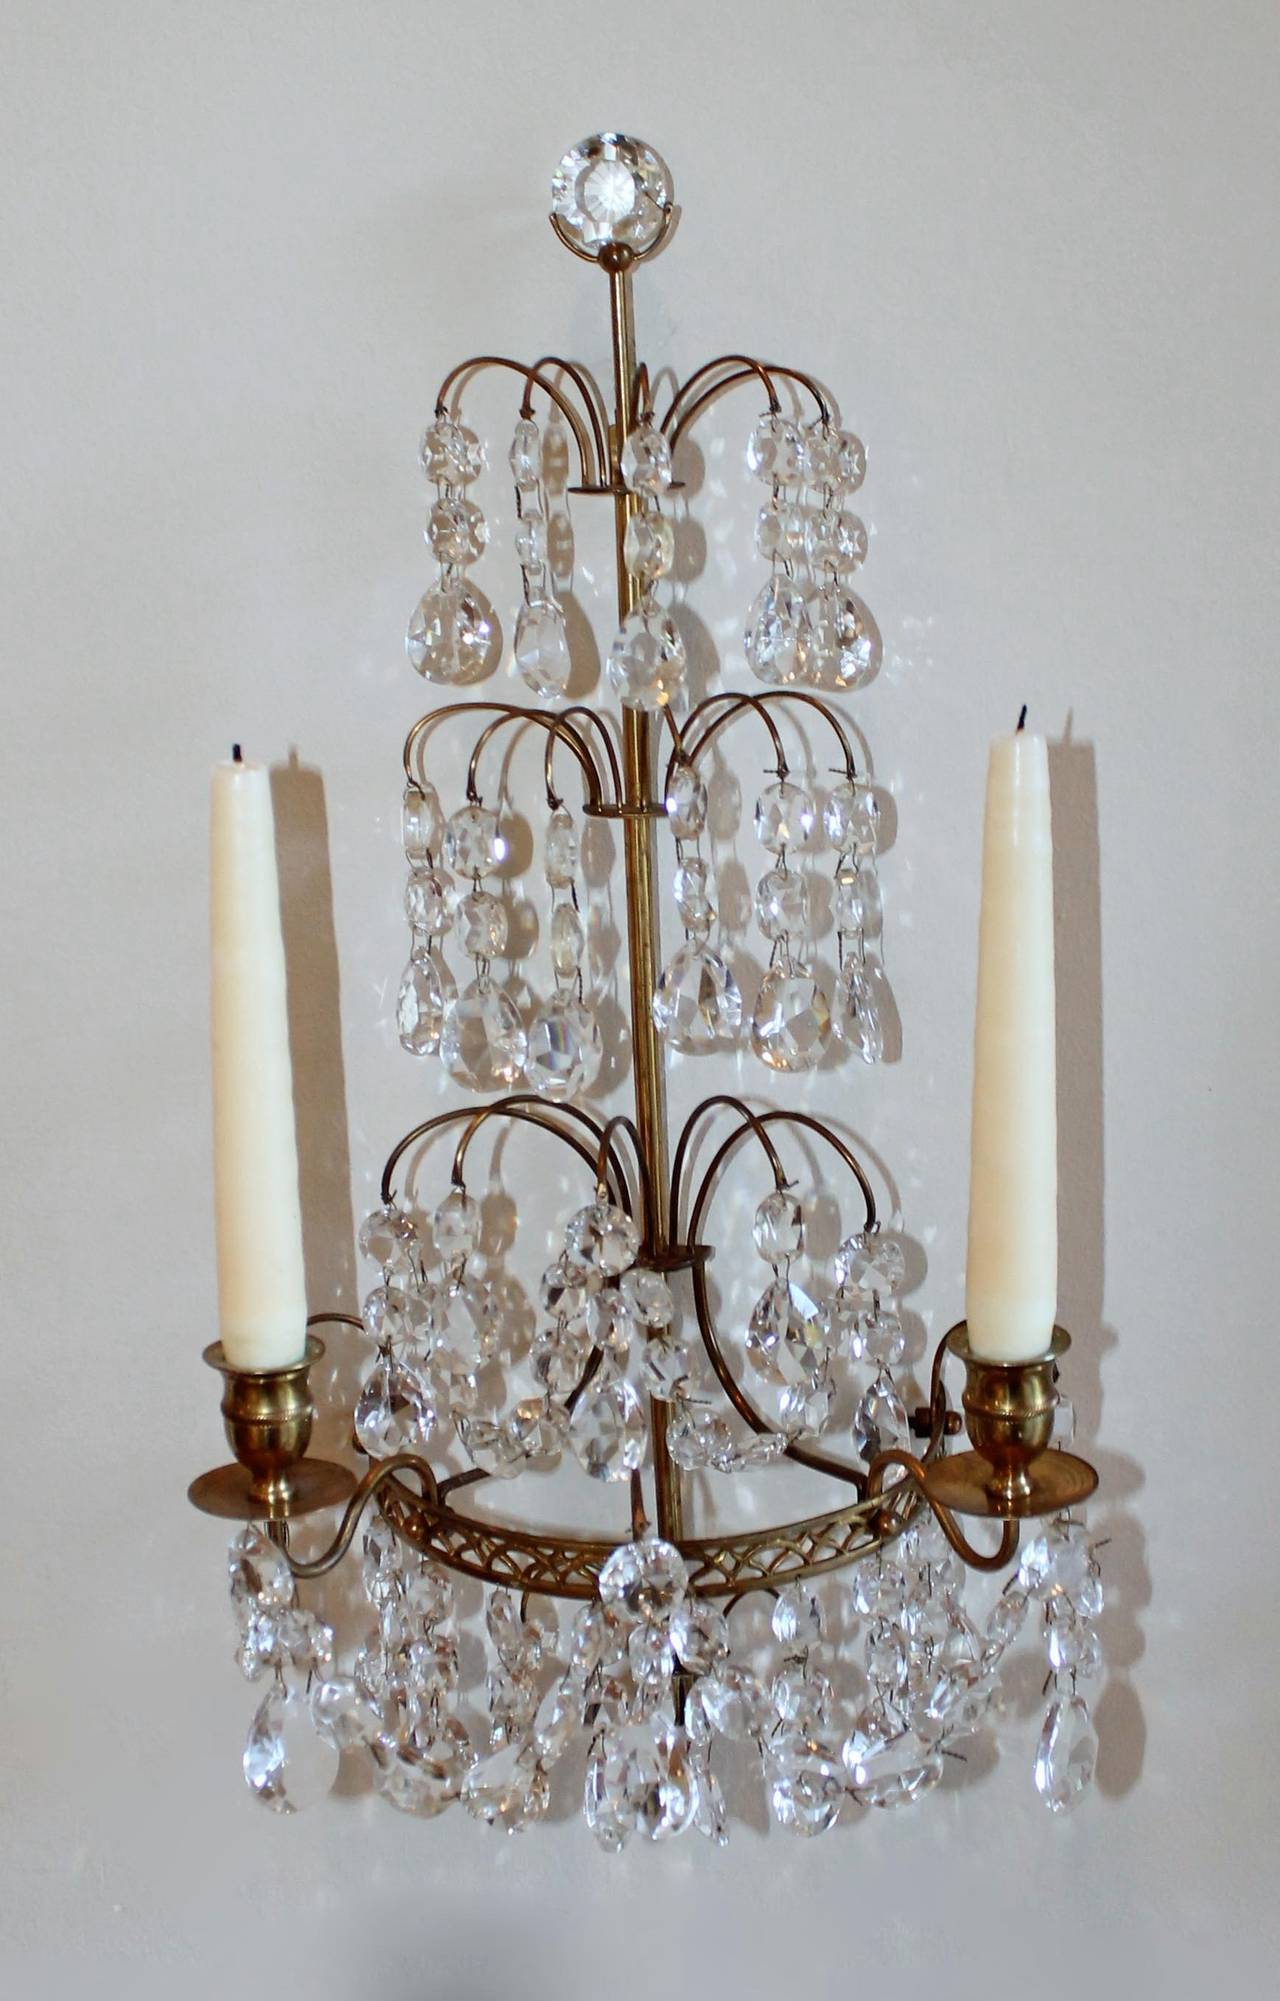 Bronze Wall Sconces For Candles : Pair of Swedish Gustavian Style, Crystal and Bronze Candle Wall Sconces at 1stdibs